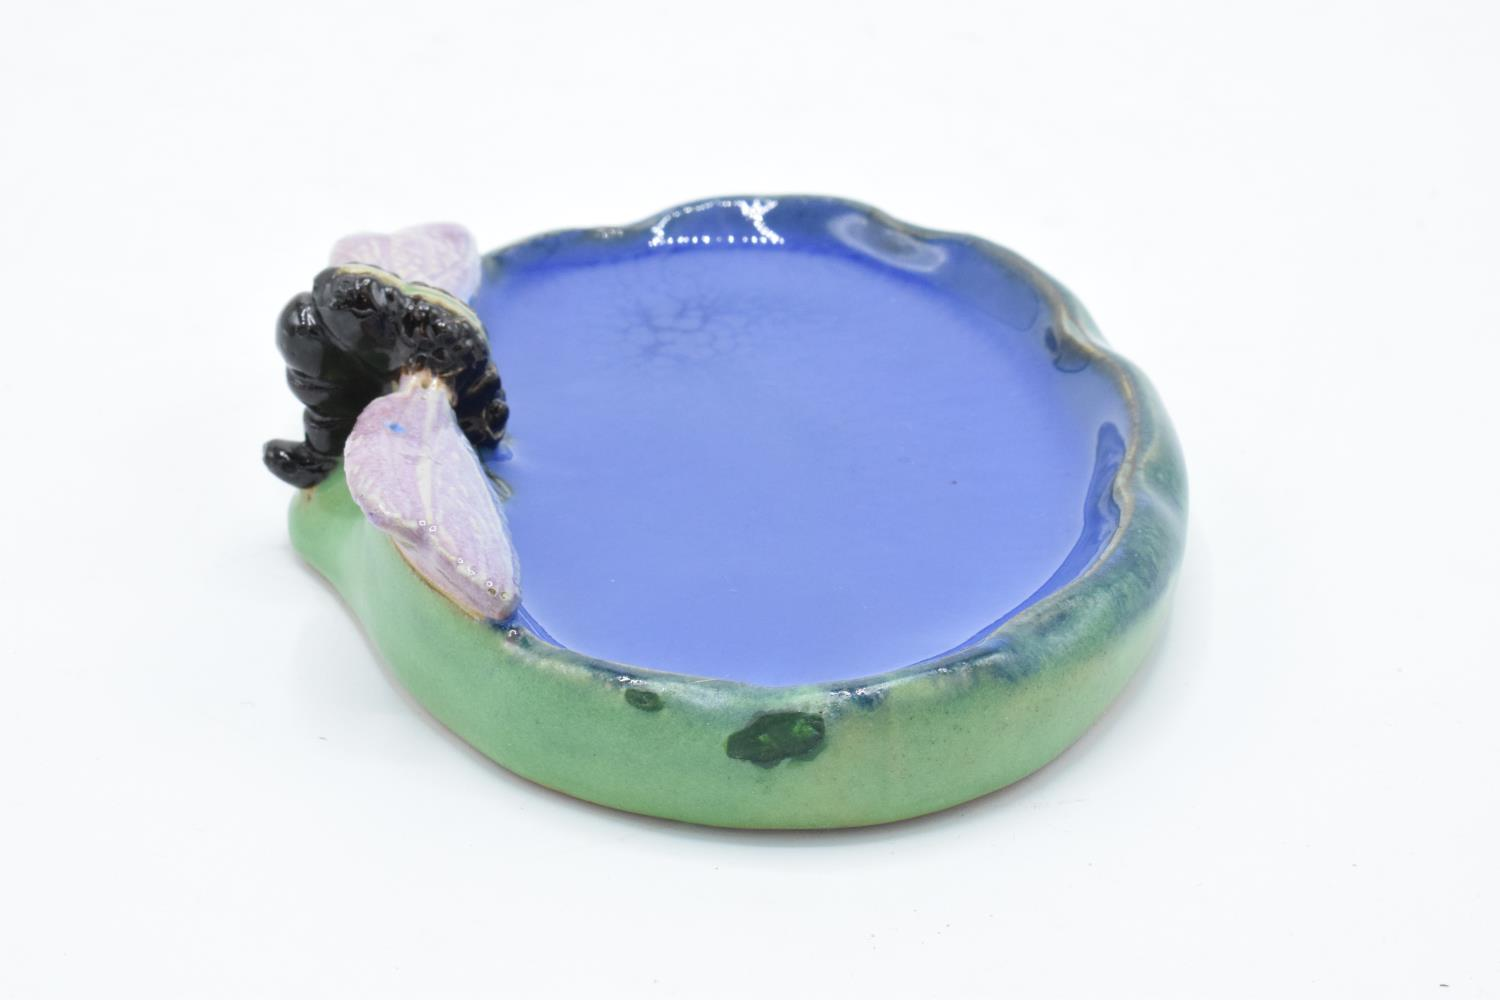 Royal Doulton stoneware Dragonfly bibelot/ soap dish for Wrights Coaltar soap. The item is in good - Image 4 of 9